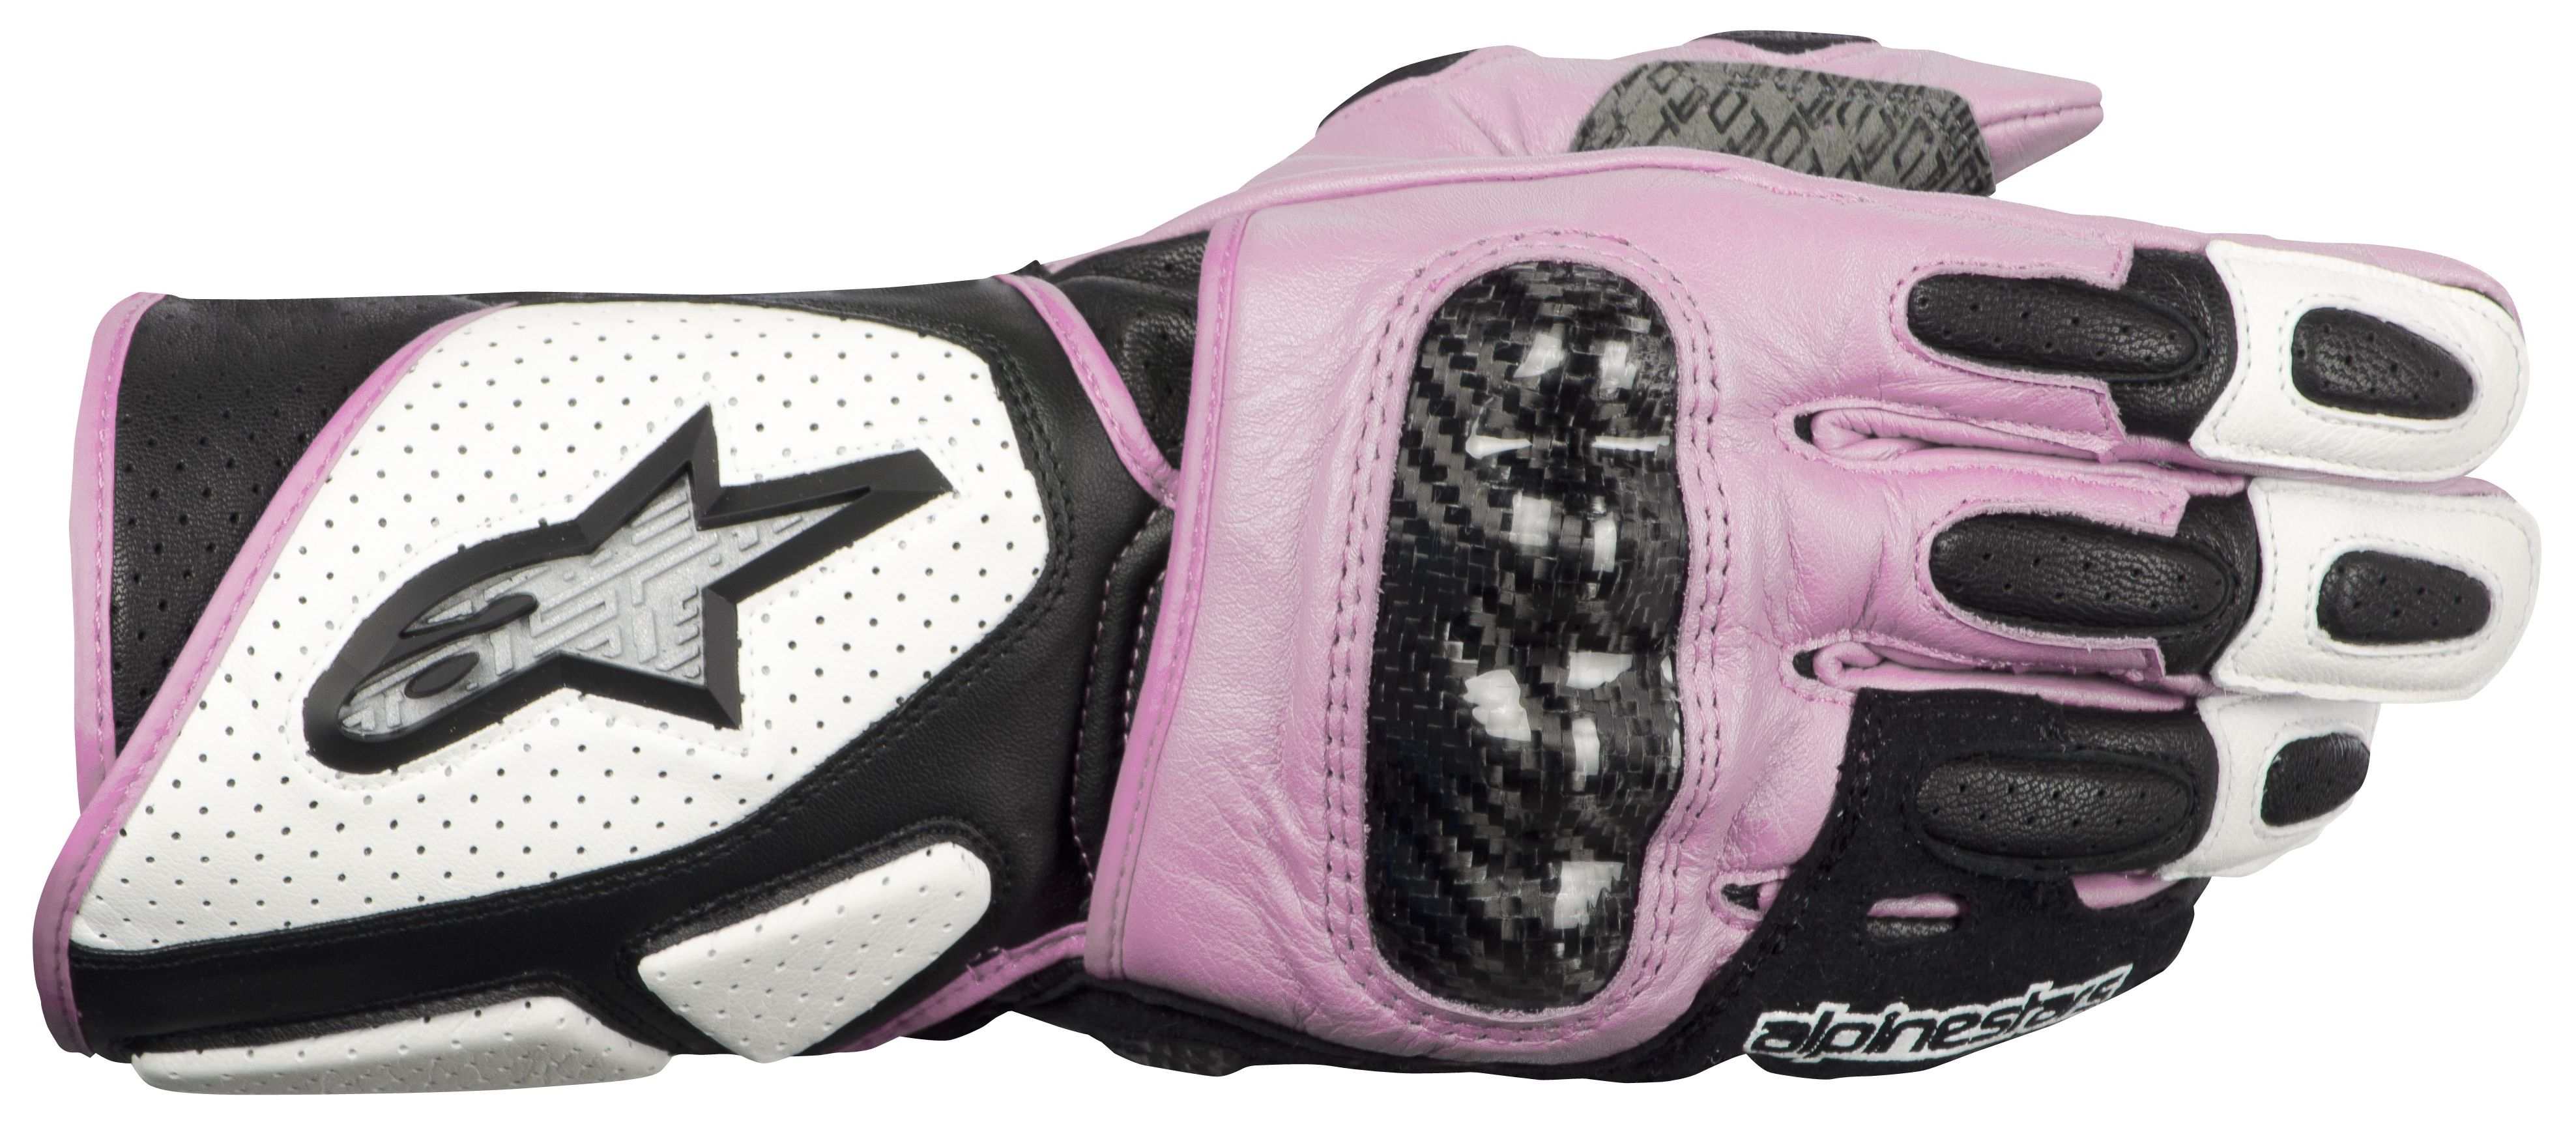 Womens pink leather motorcycle gloves - Womens Pink Leather Motorcycle Gloves 9